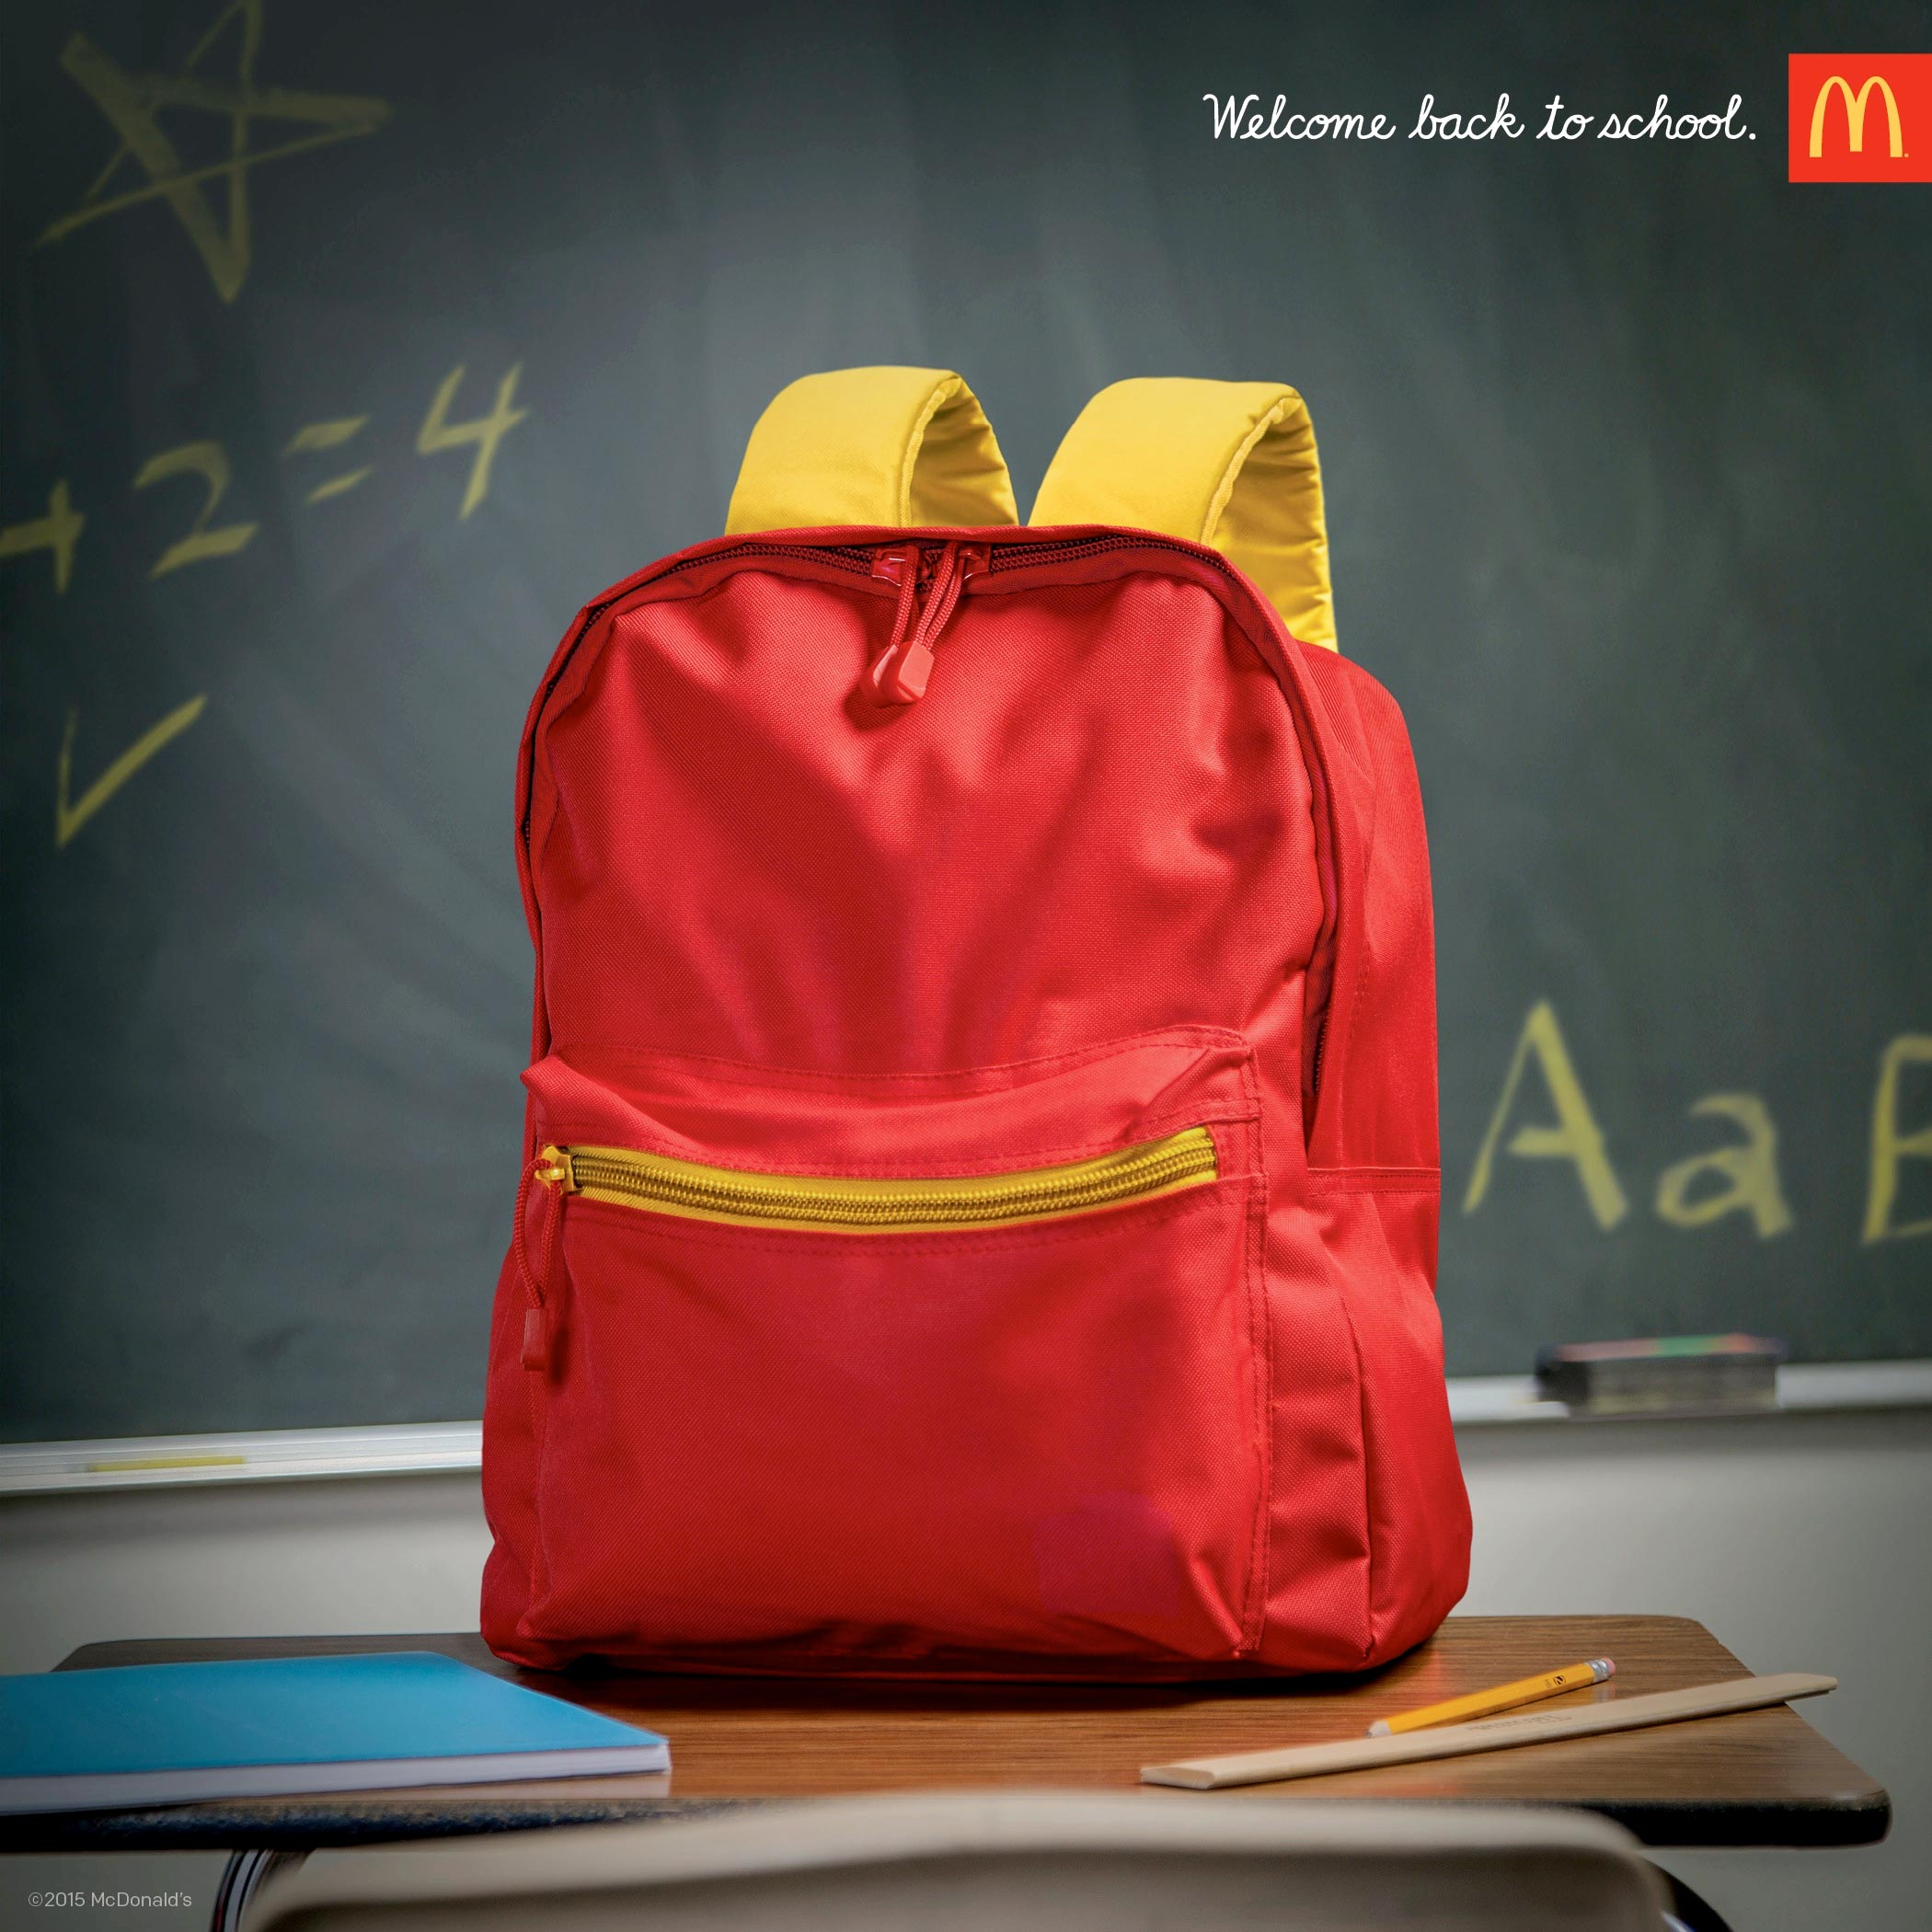 McDonald's Welcome Back to School